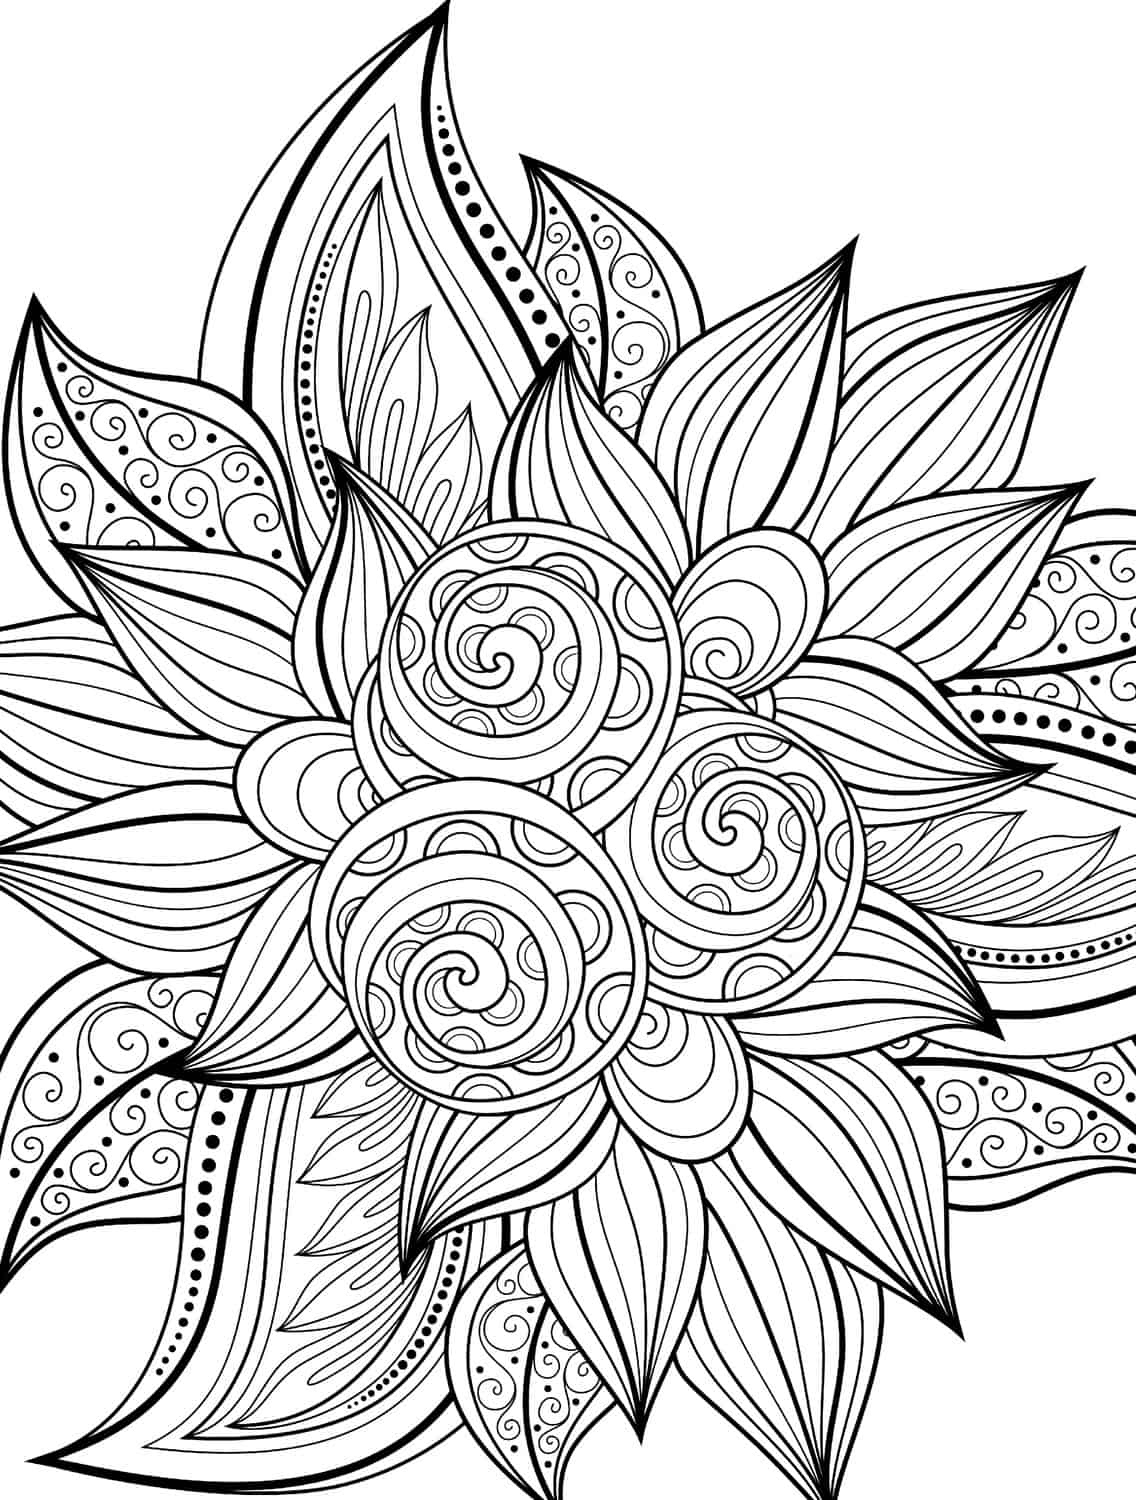 coloring pages for adults patterns flower coloring pages for adults best coloring pages for adults patterns coloring pages for